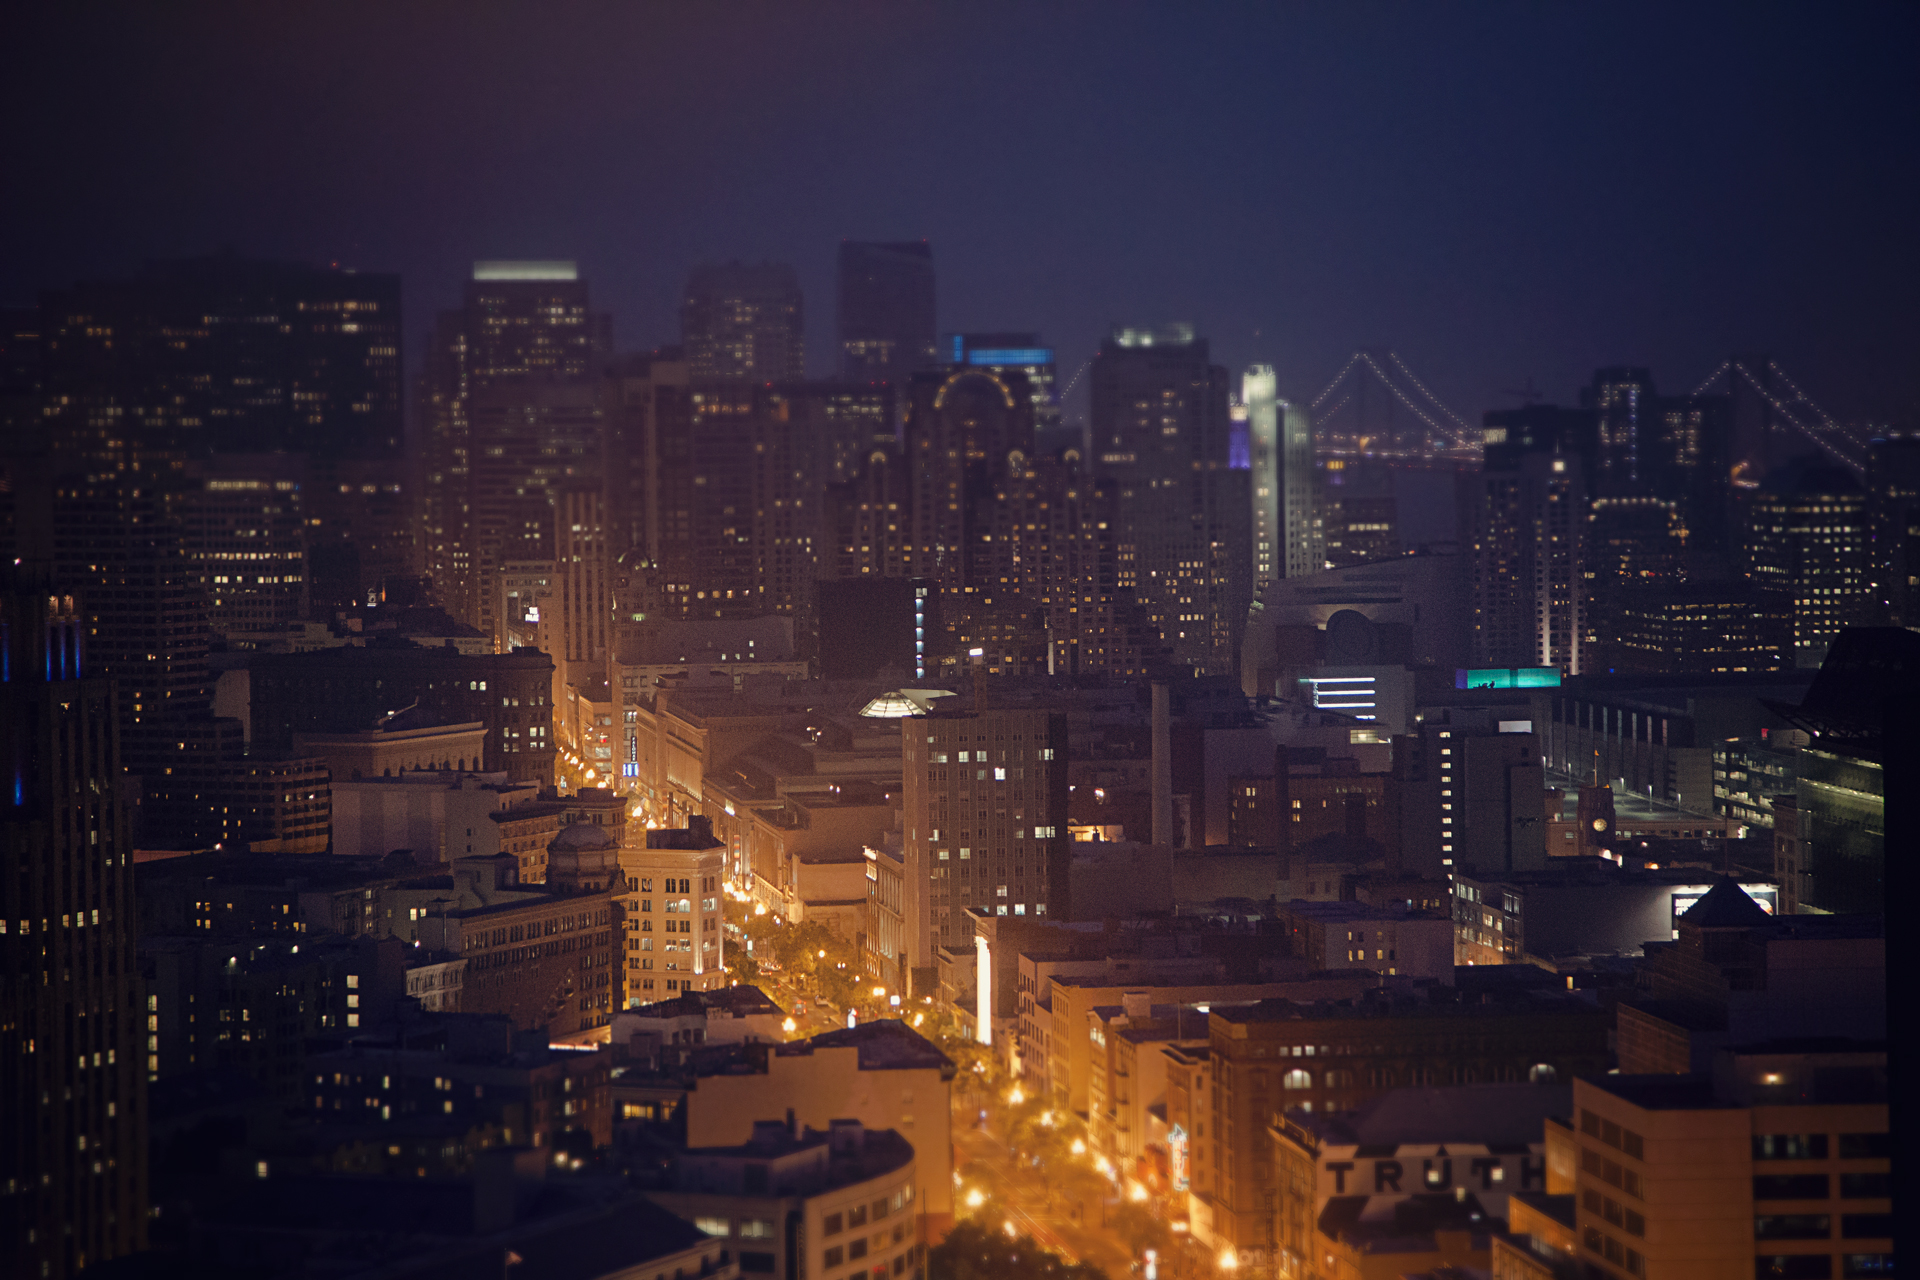 city-view-at-night-san-francisco-patrick-sanders.jpg